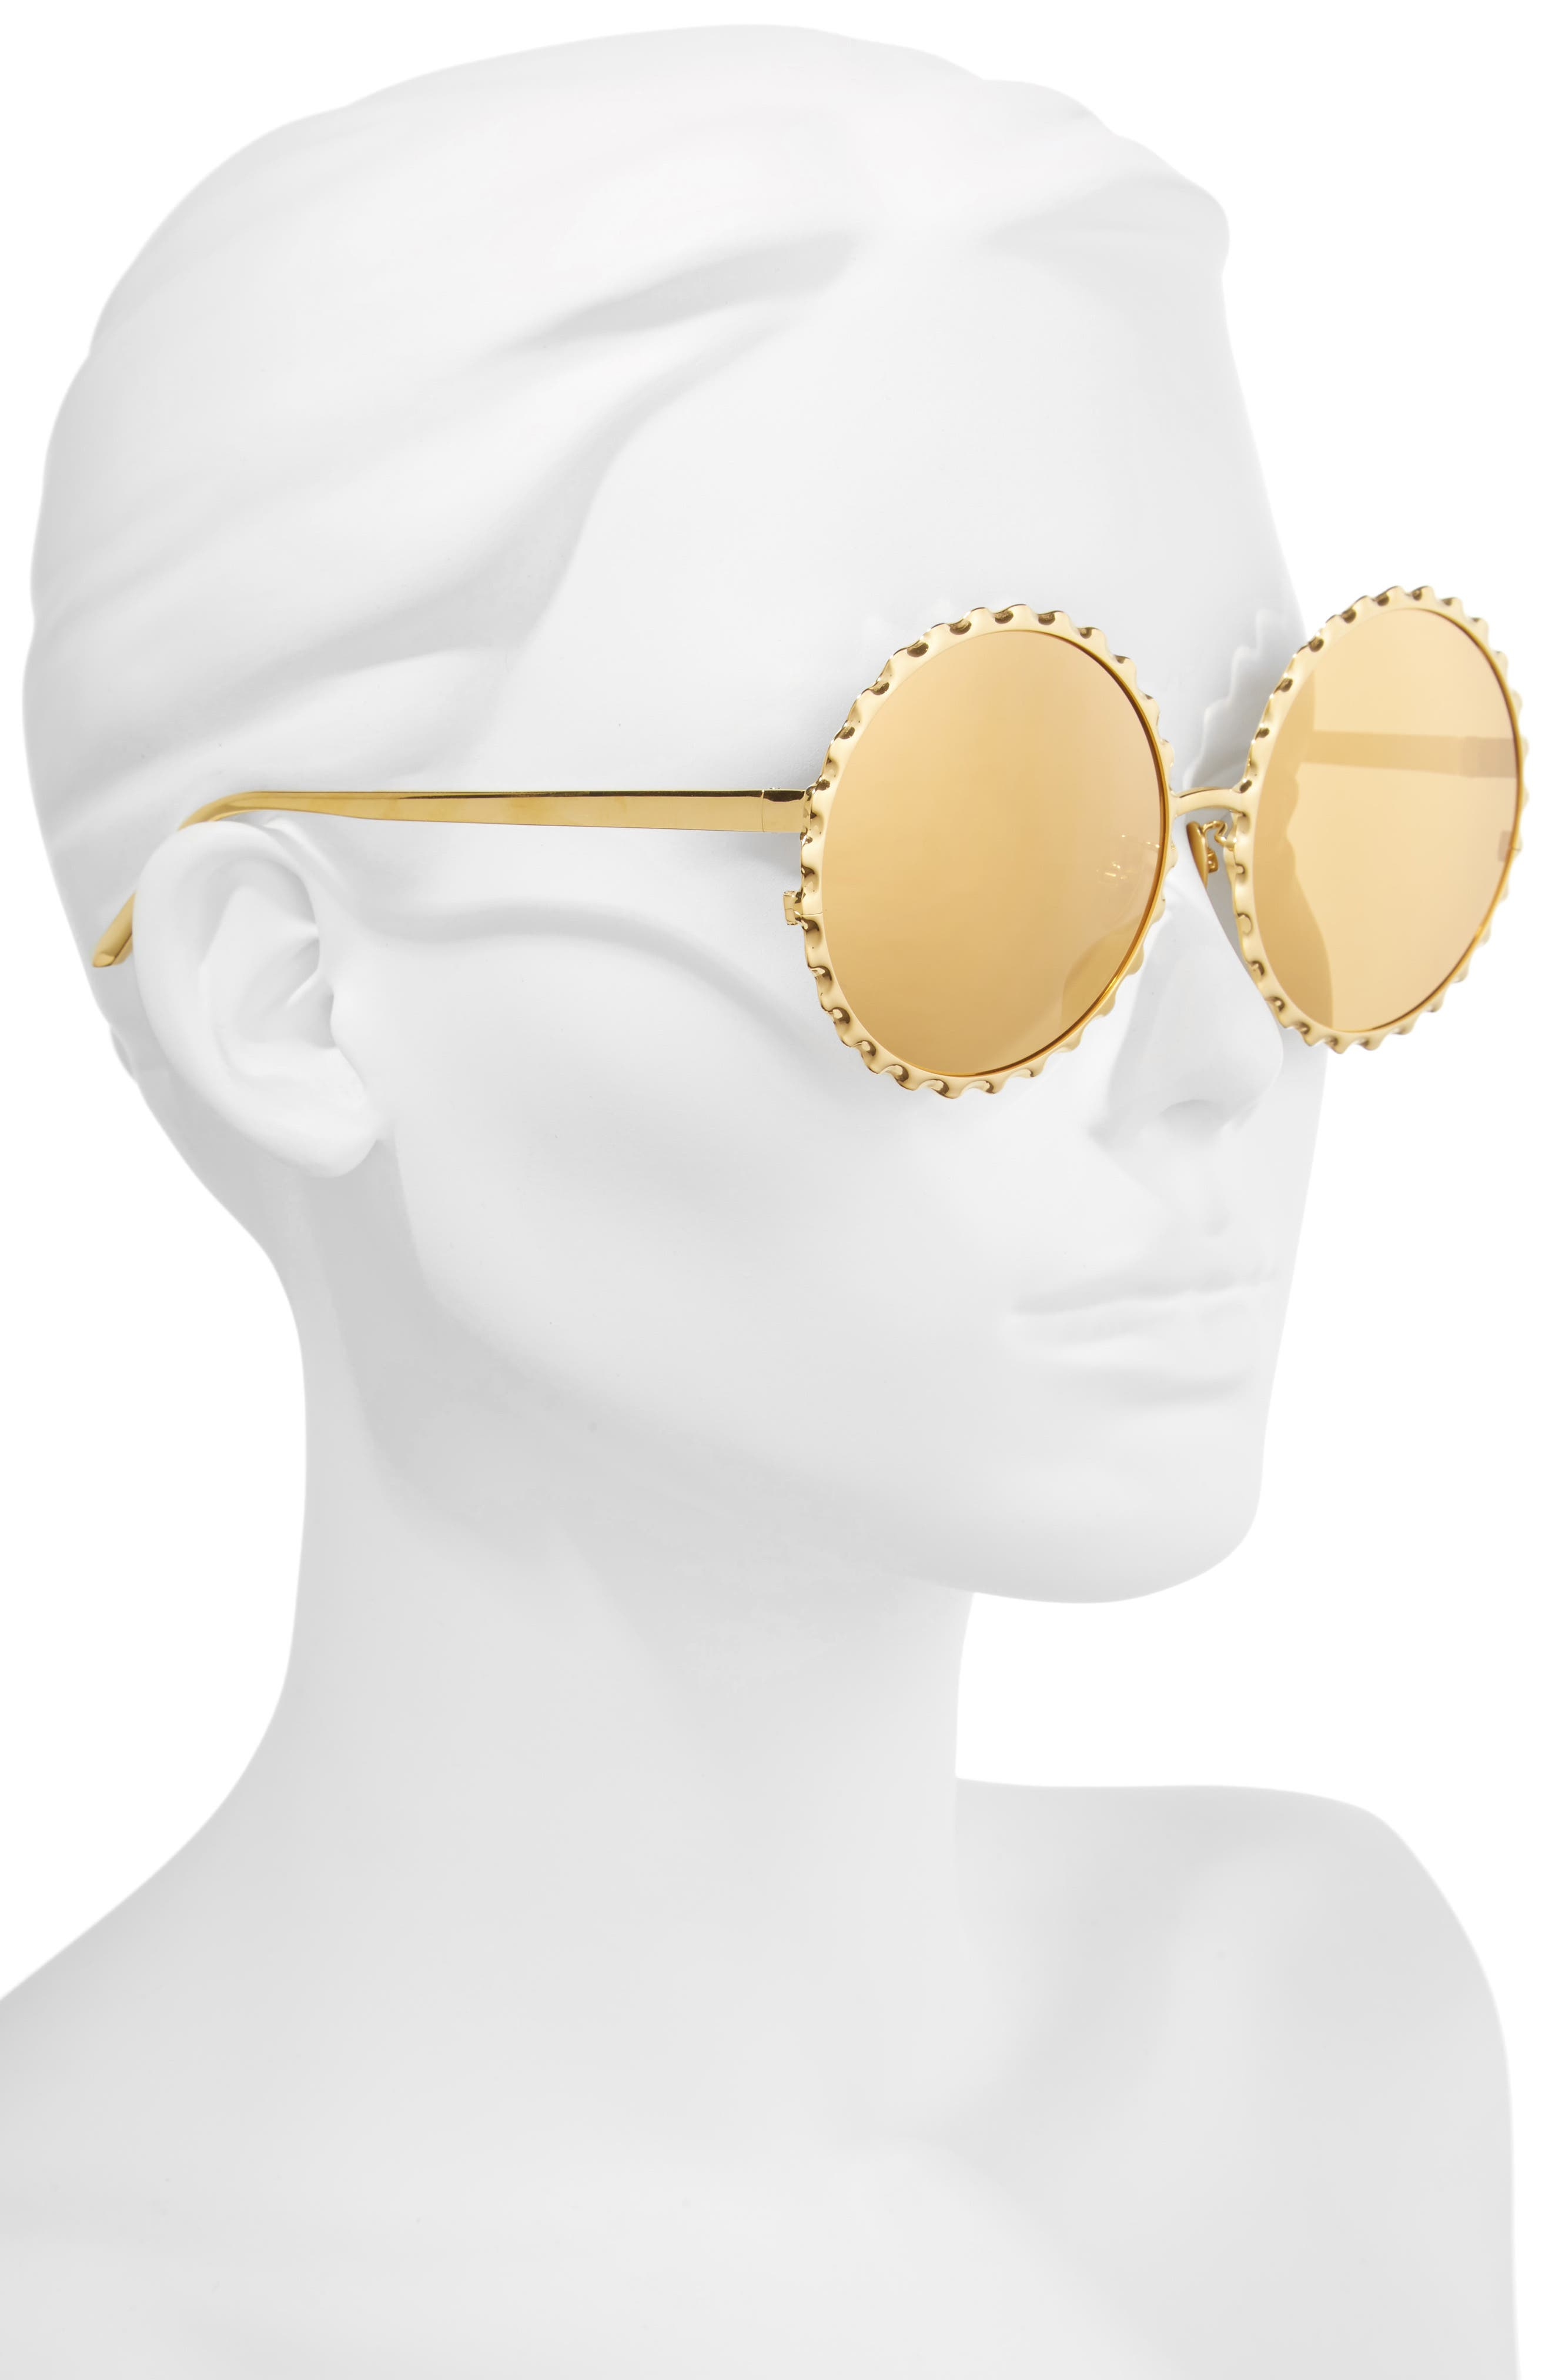 59mm Mirrored 18 Karat Gold Trim Round Sunglasses,                             Alternate thumbnail 2, color,                             710